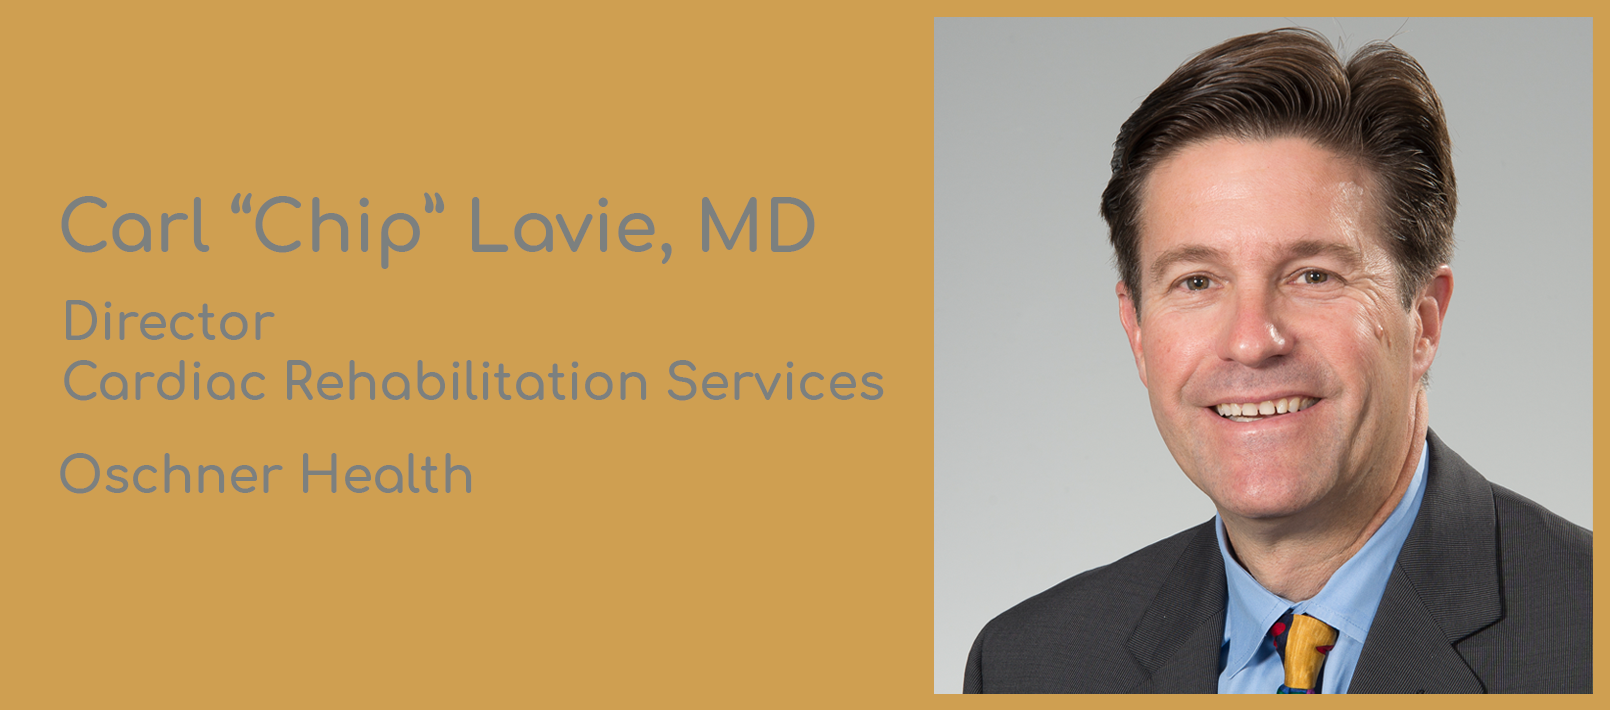 """Headshot of Dr. Carl """"Chip"""" Lavie, MD, FACP on right. On left: his name and title - Director, Cardiac Rehabilitation Services, Oschner Health"""